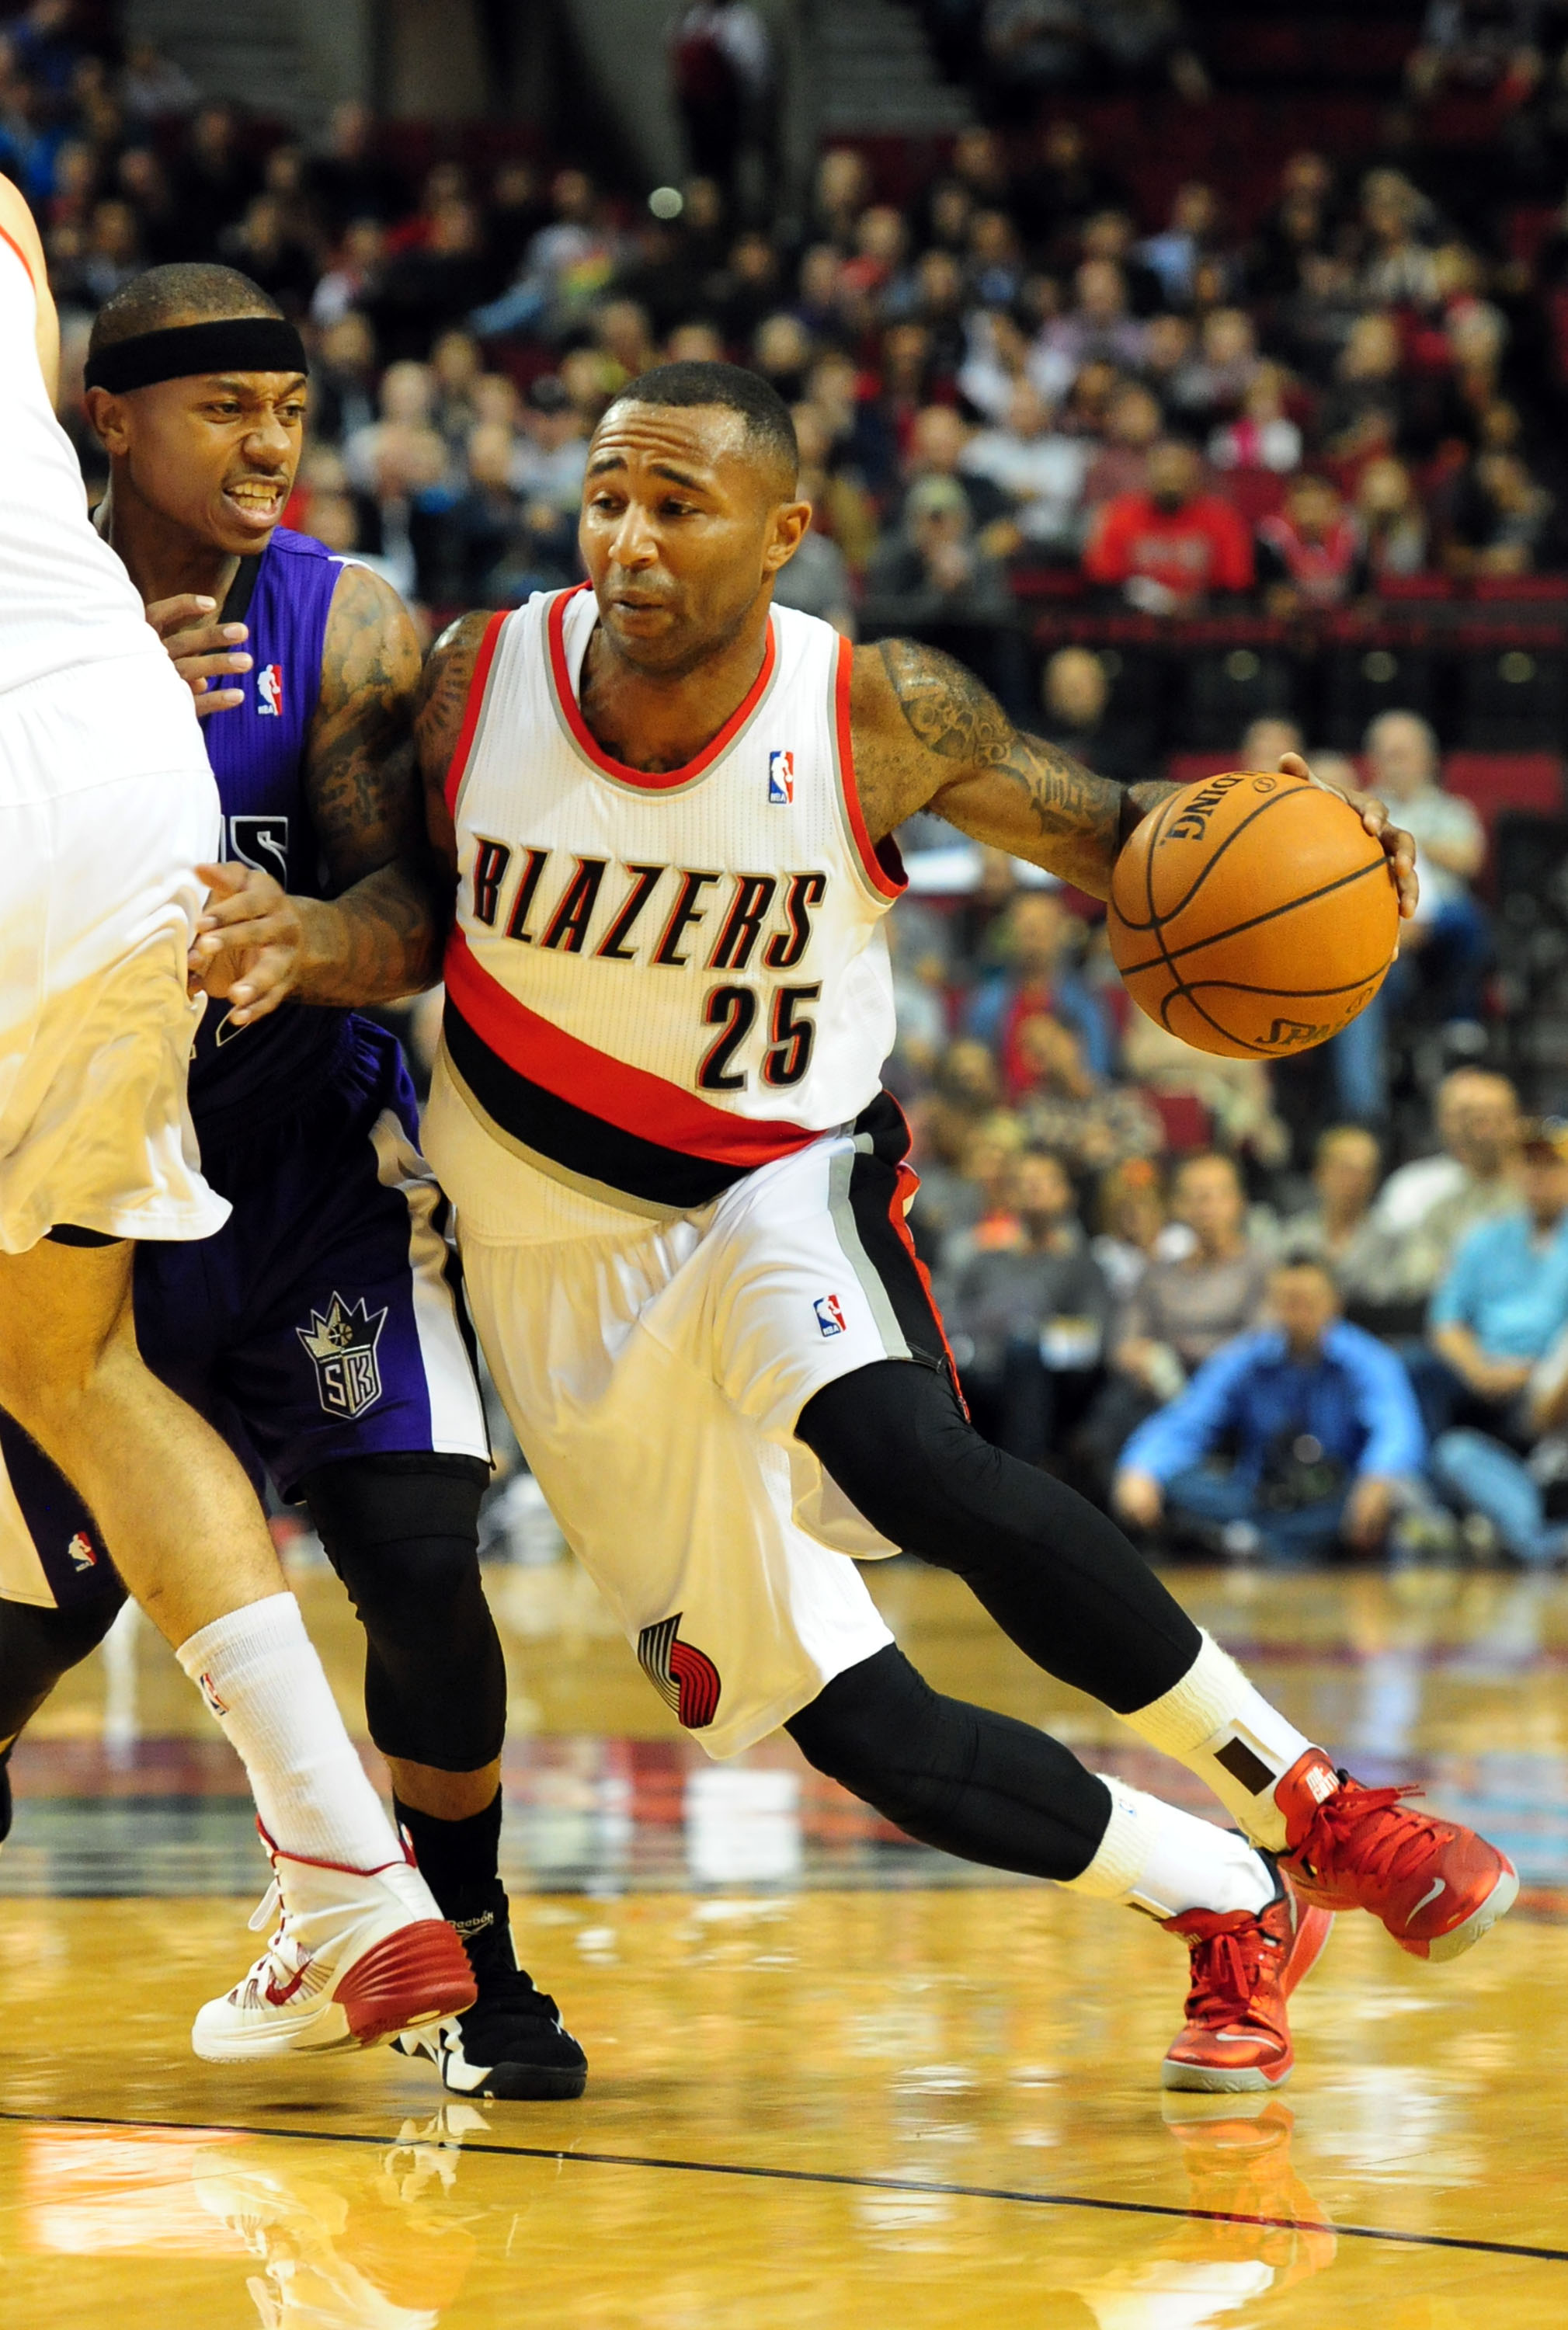 Portland Trail Blazers guard Mo Williams (25) dries to the basket past Sacramento Kings guard Isaiah Thomas (22) during the first half of an NBA basketball game Sunday, Oct. 20, 2013, in Milwaukee